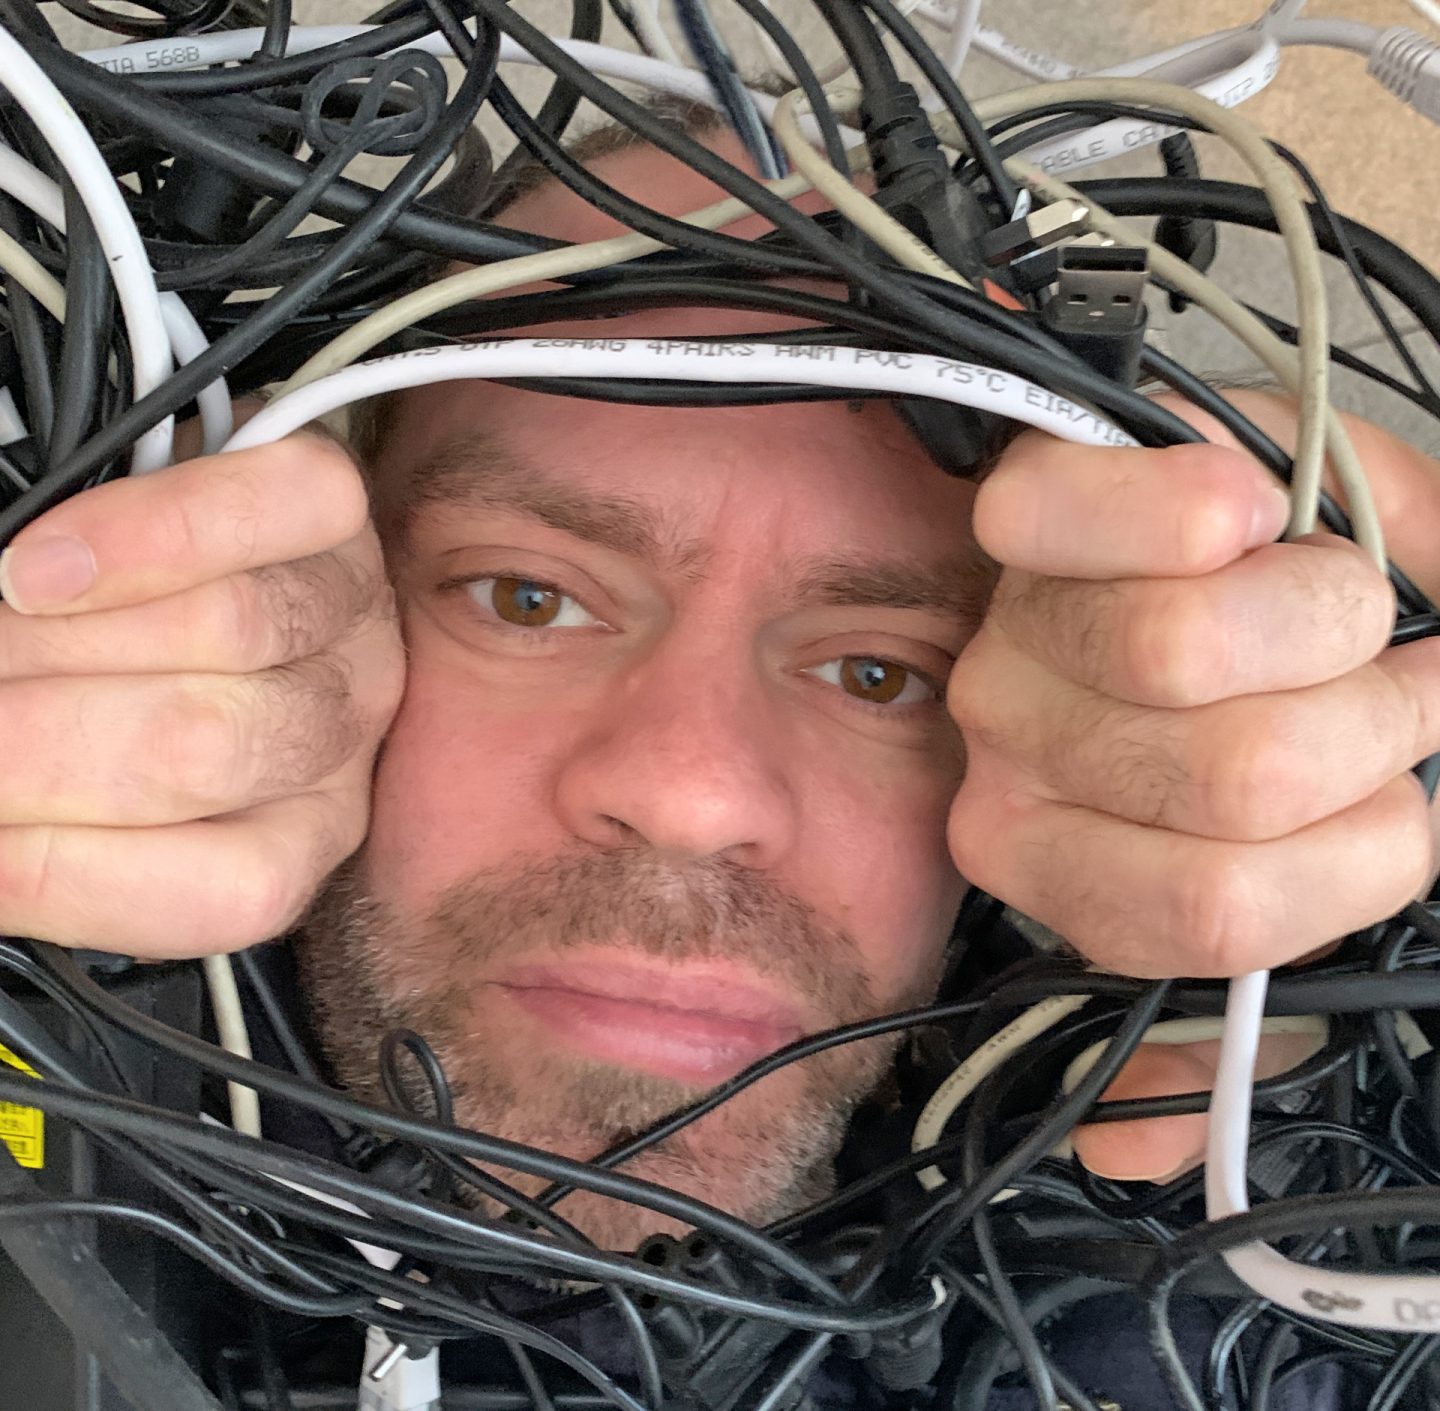 Man surrounded by wires while helping his children with home learning.